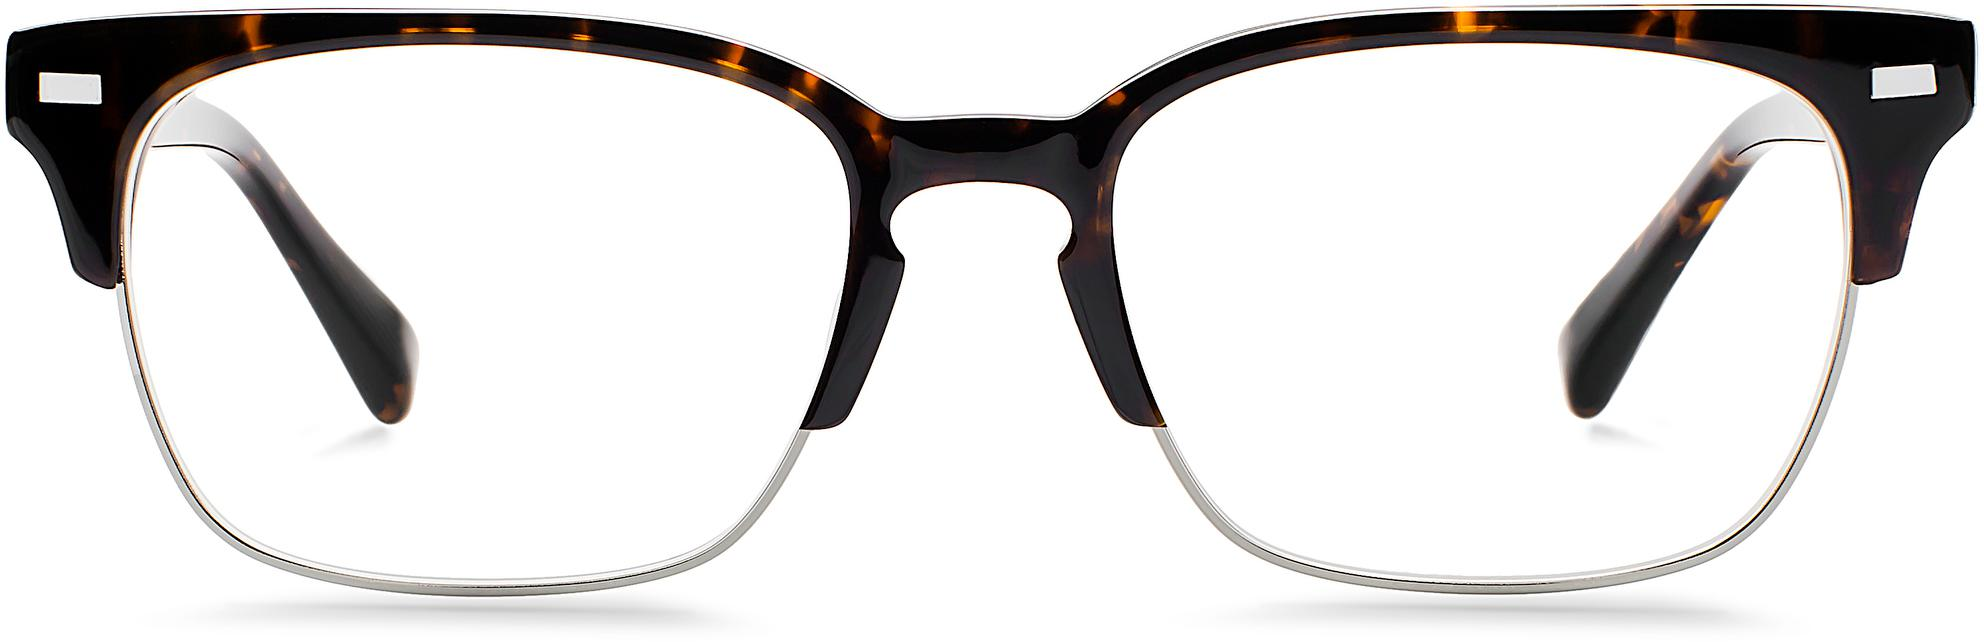 839742a100 Men s Eyeglasses